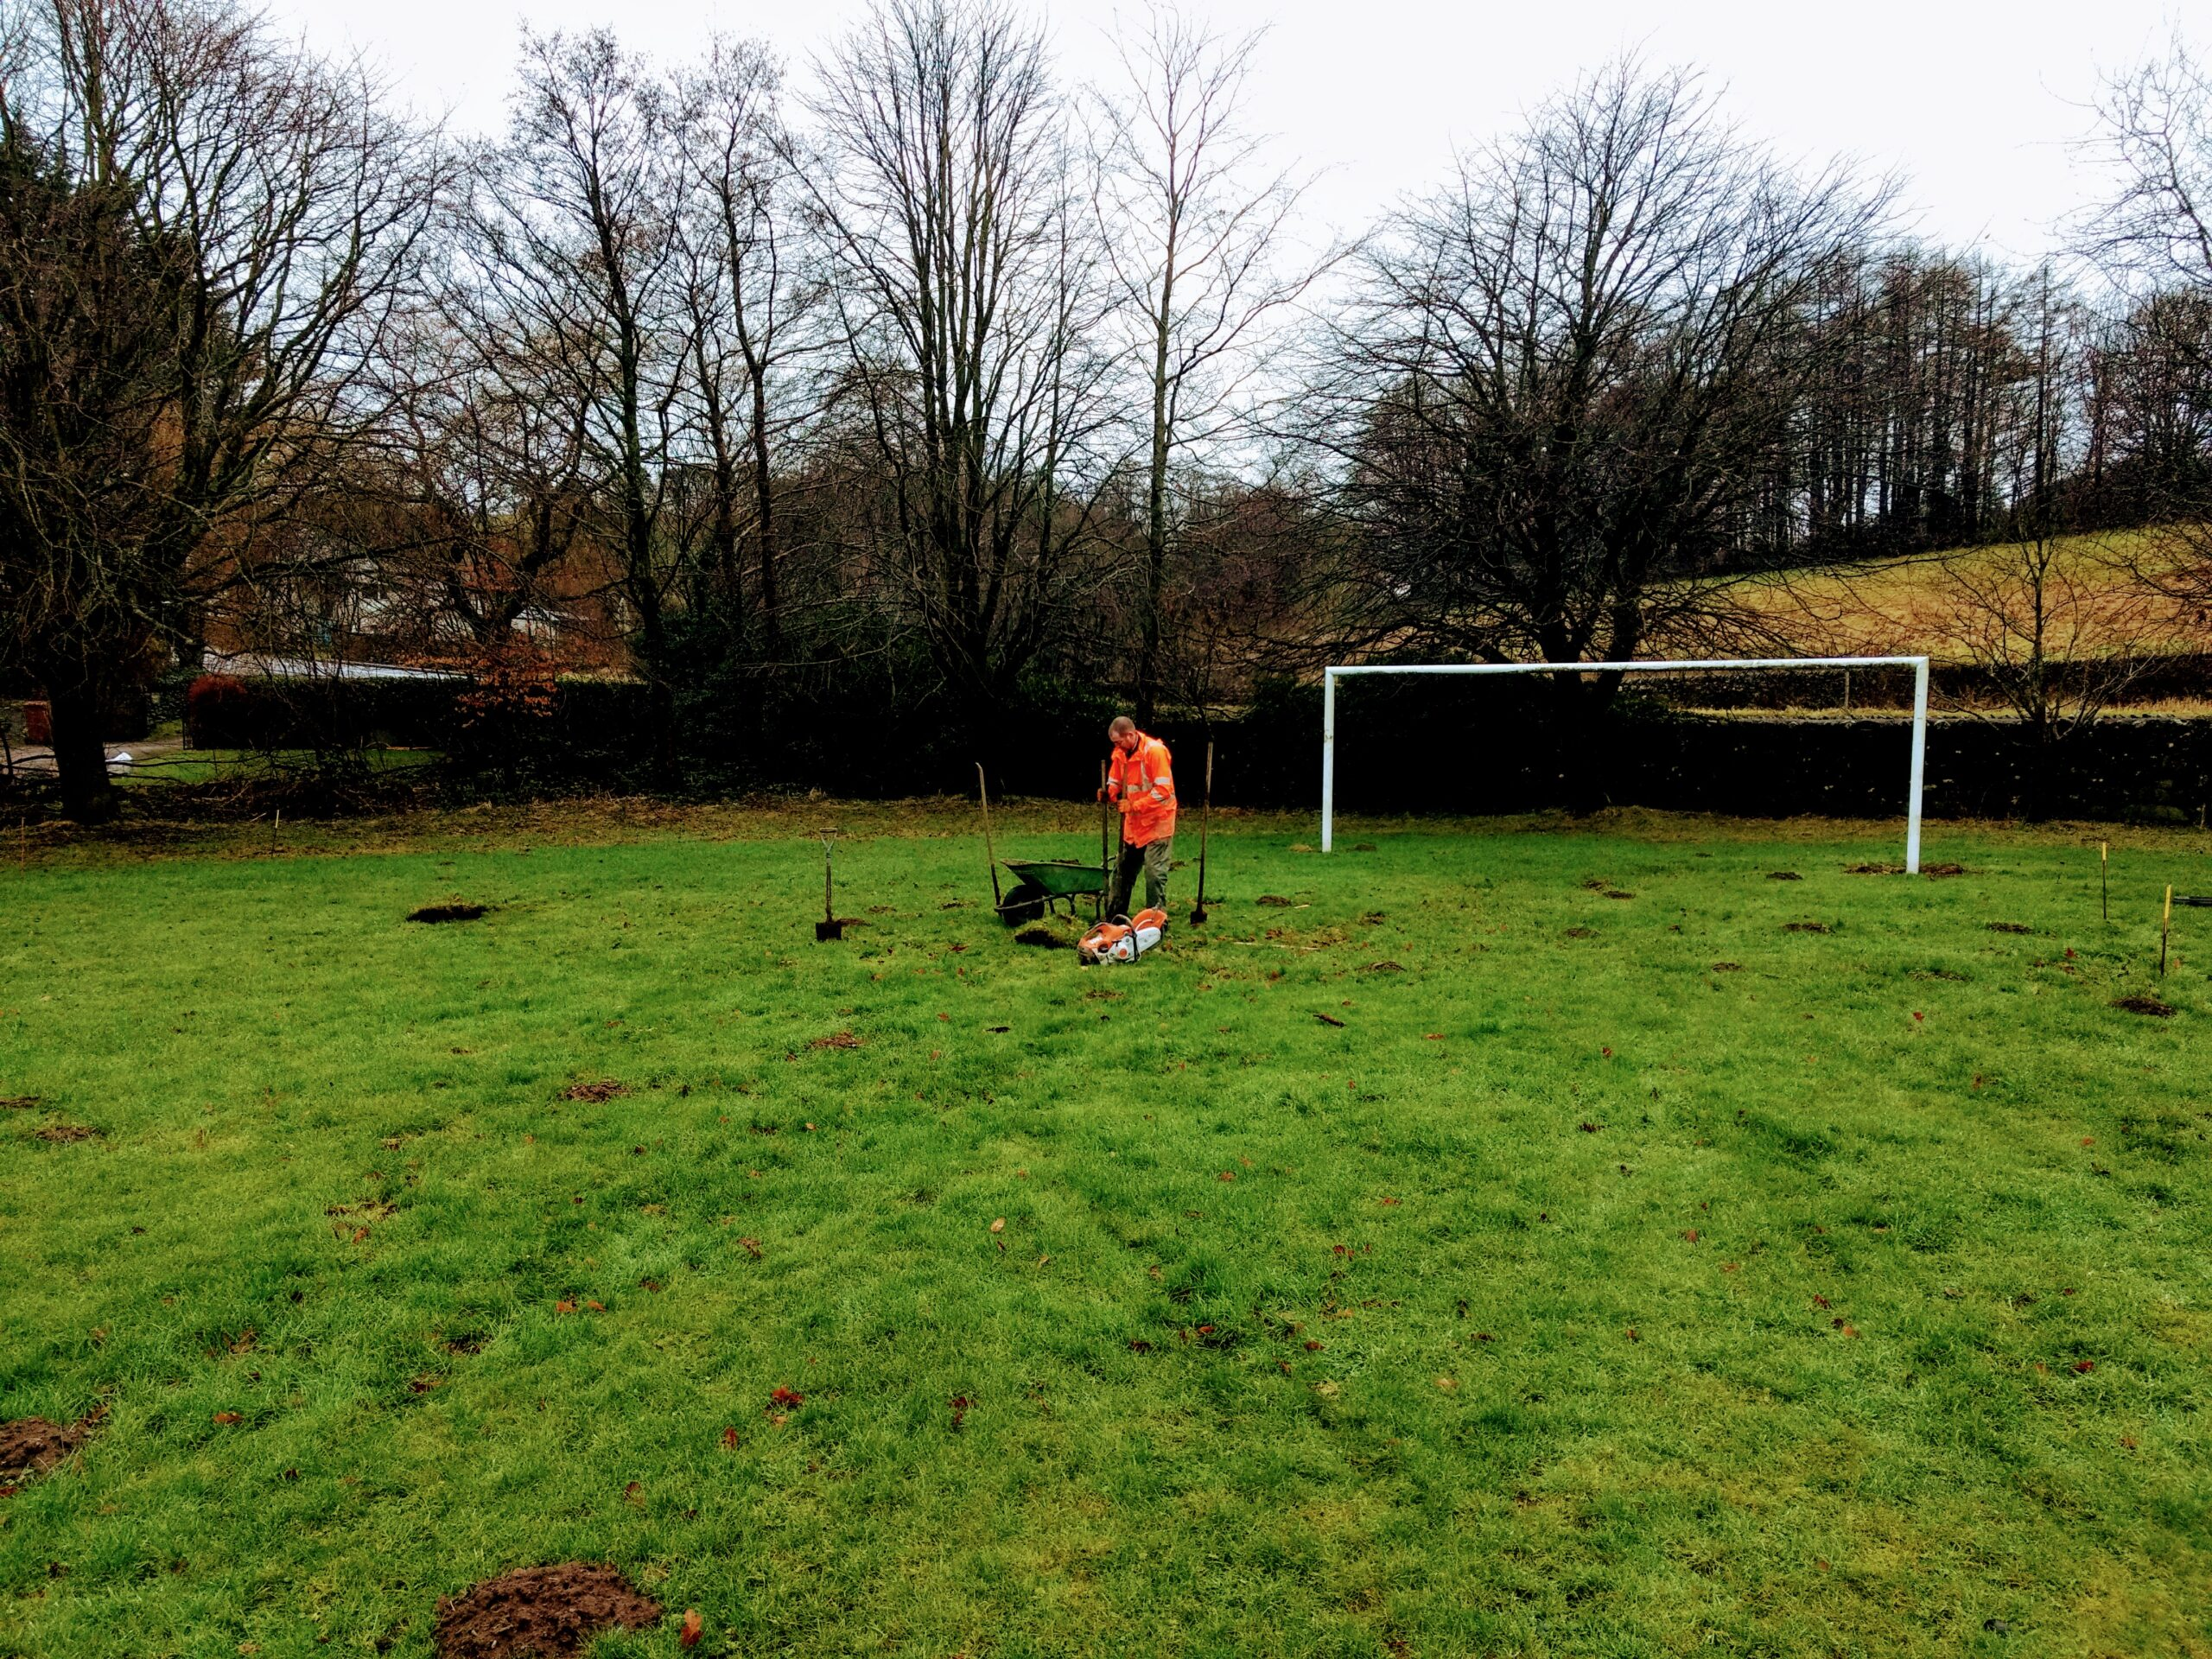 Digging out the new goalpost holes